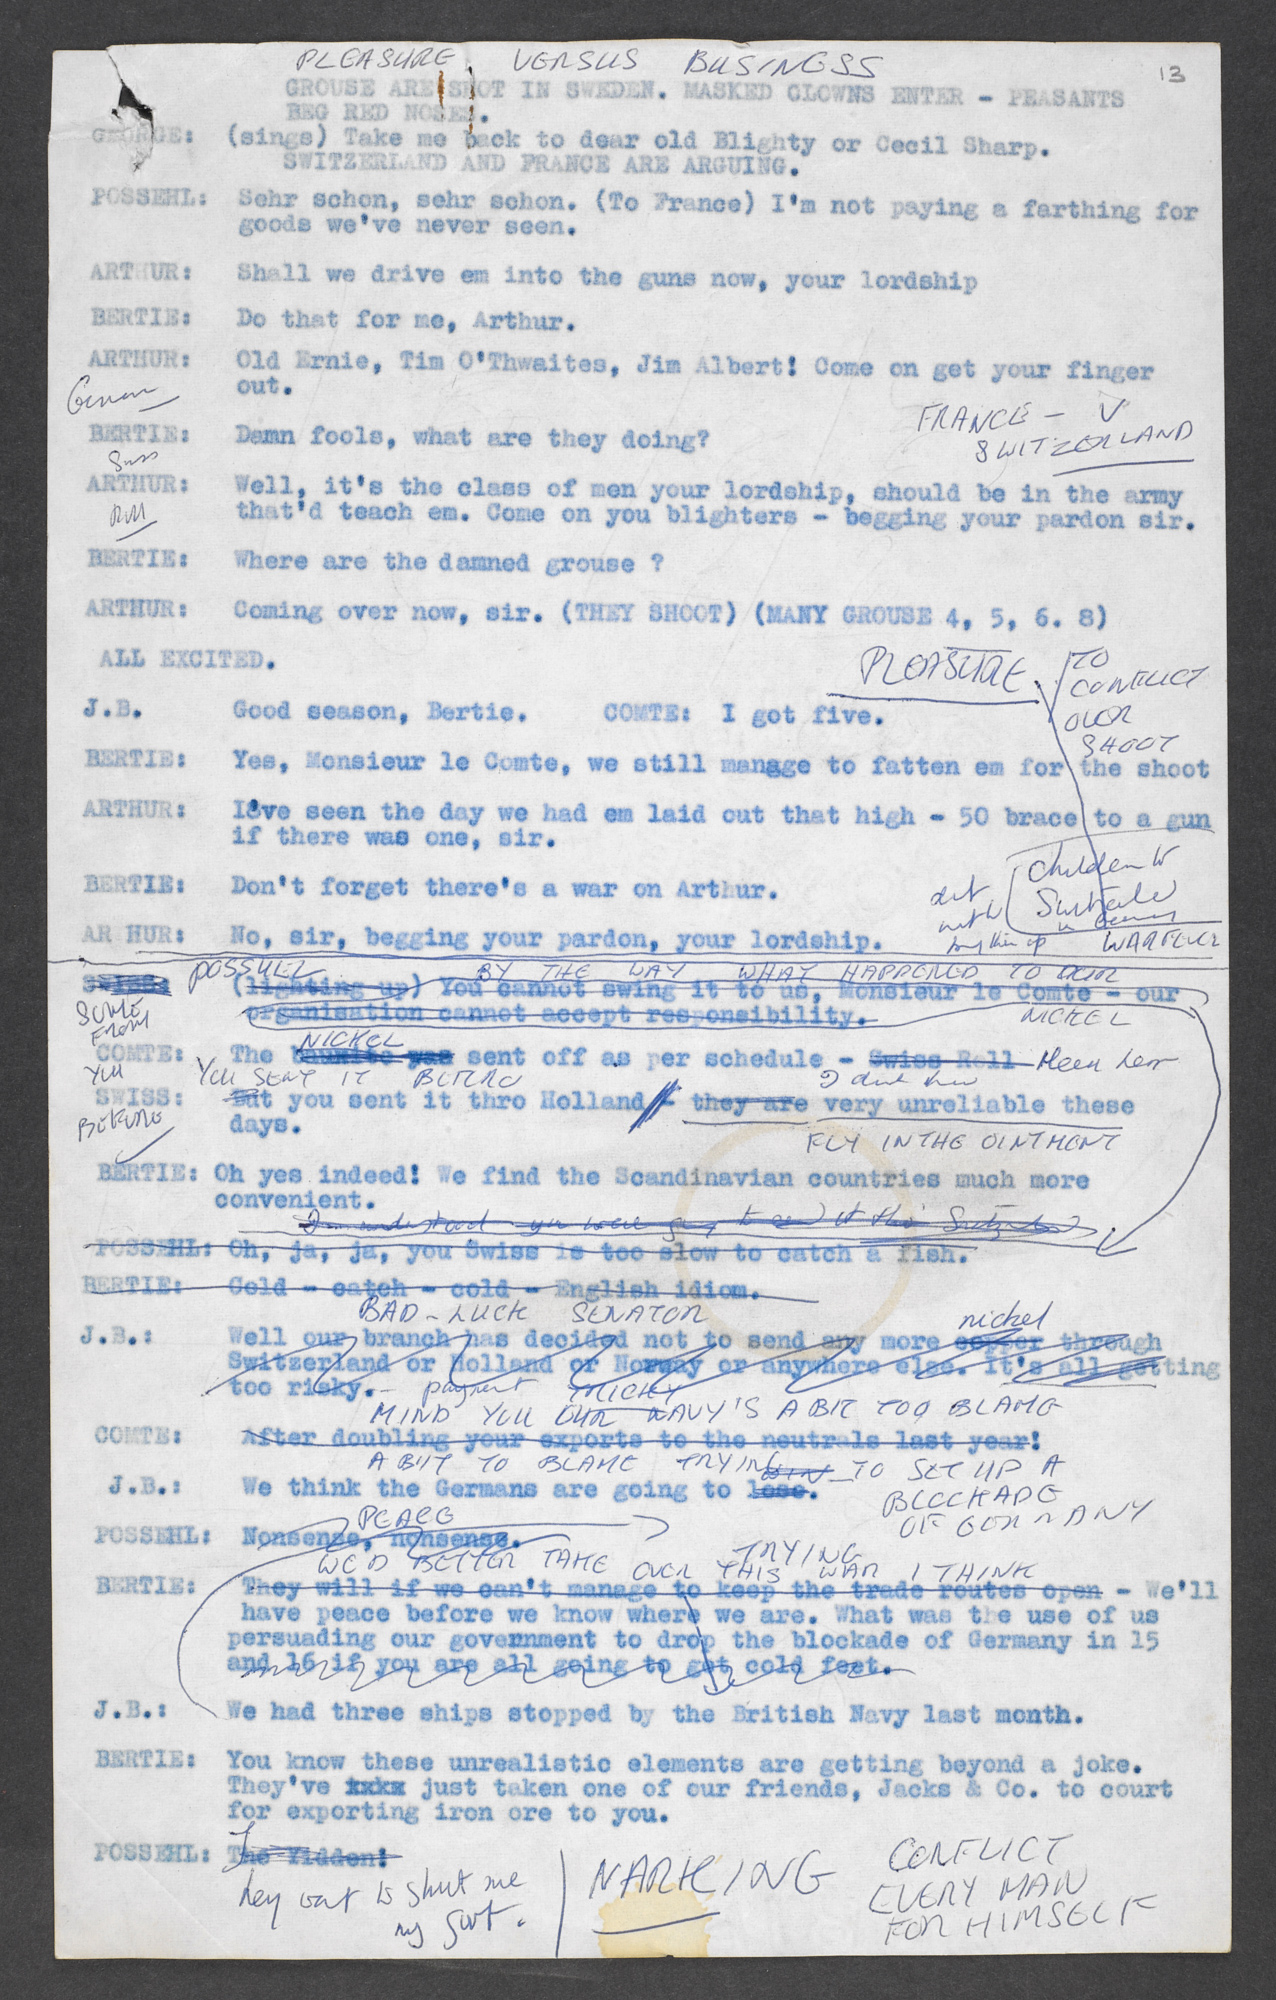 Script extracts from Oh What a Lovely War, with notes and rewrites by Joan Littlewood